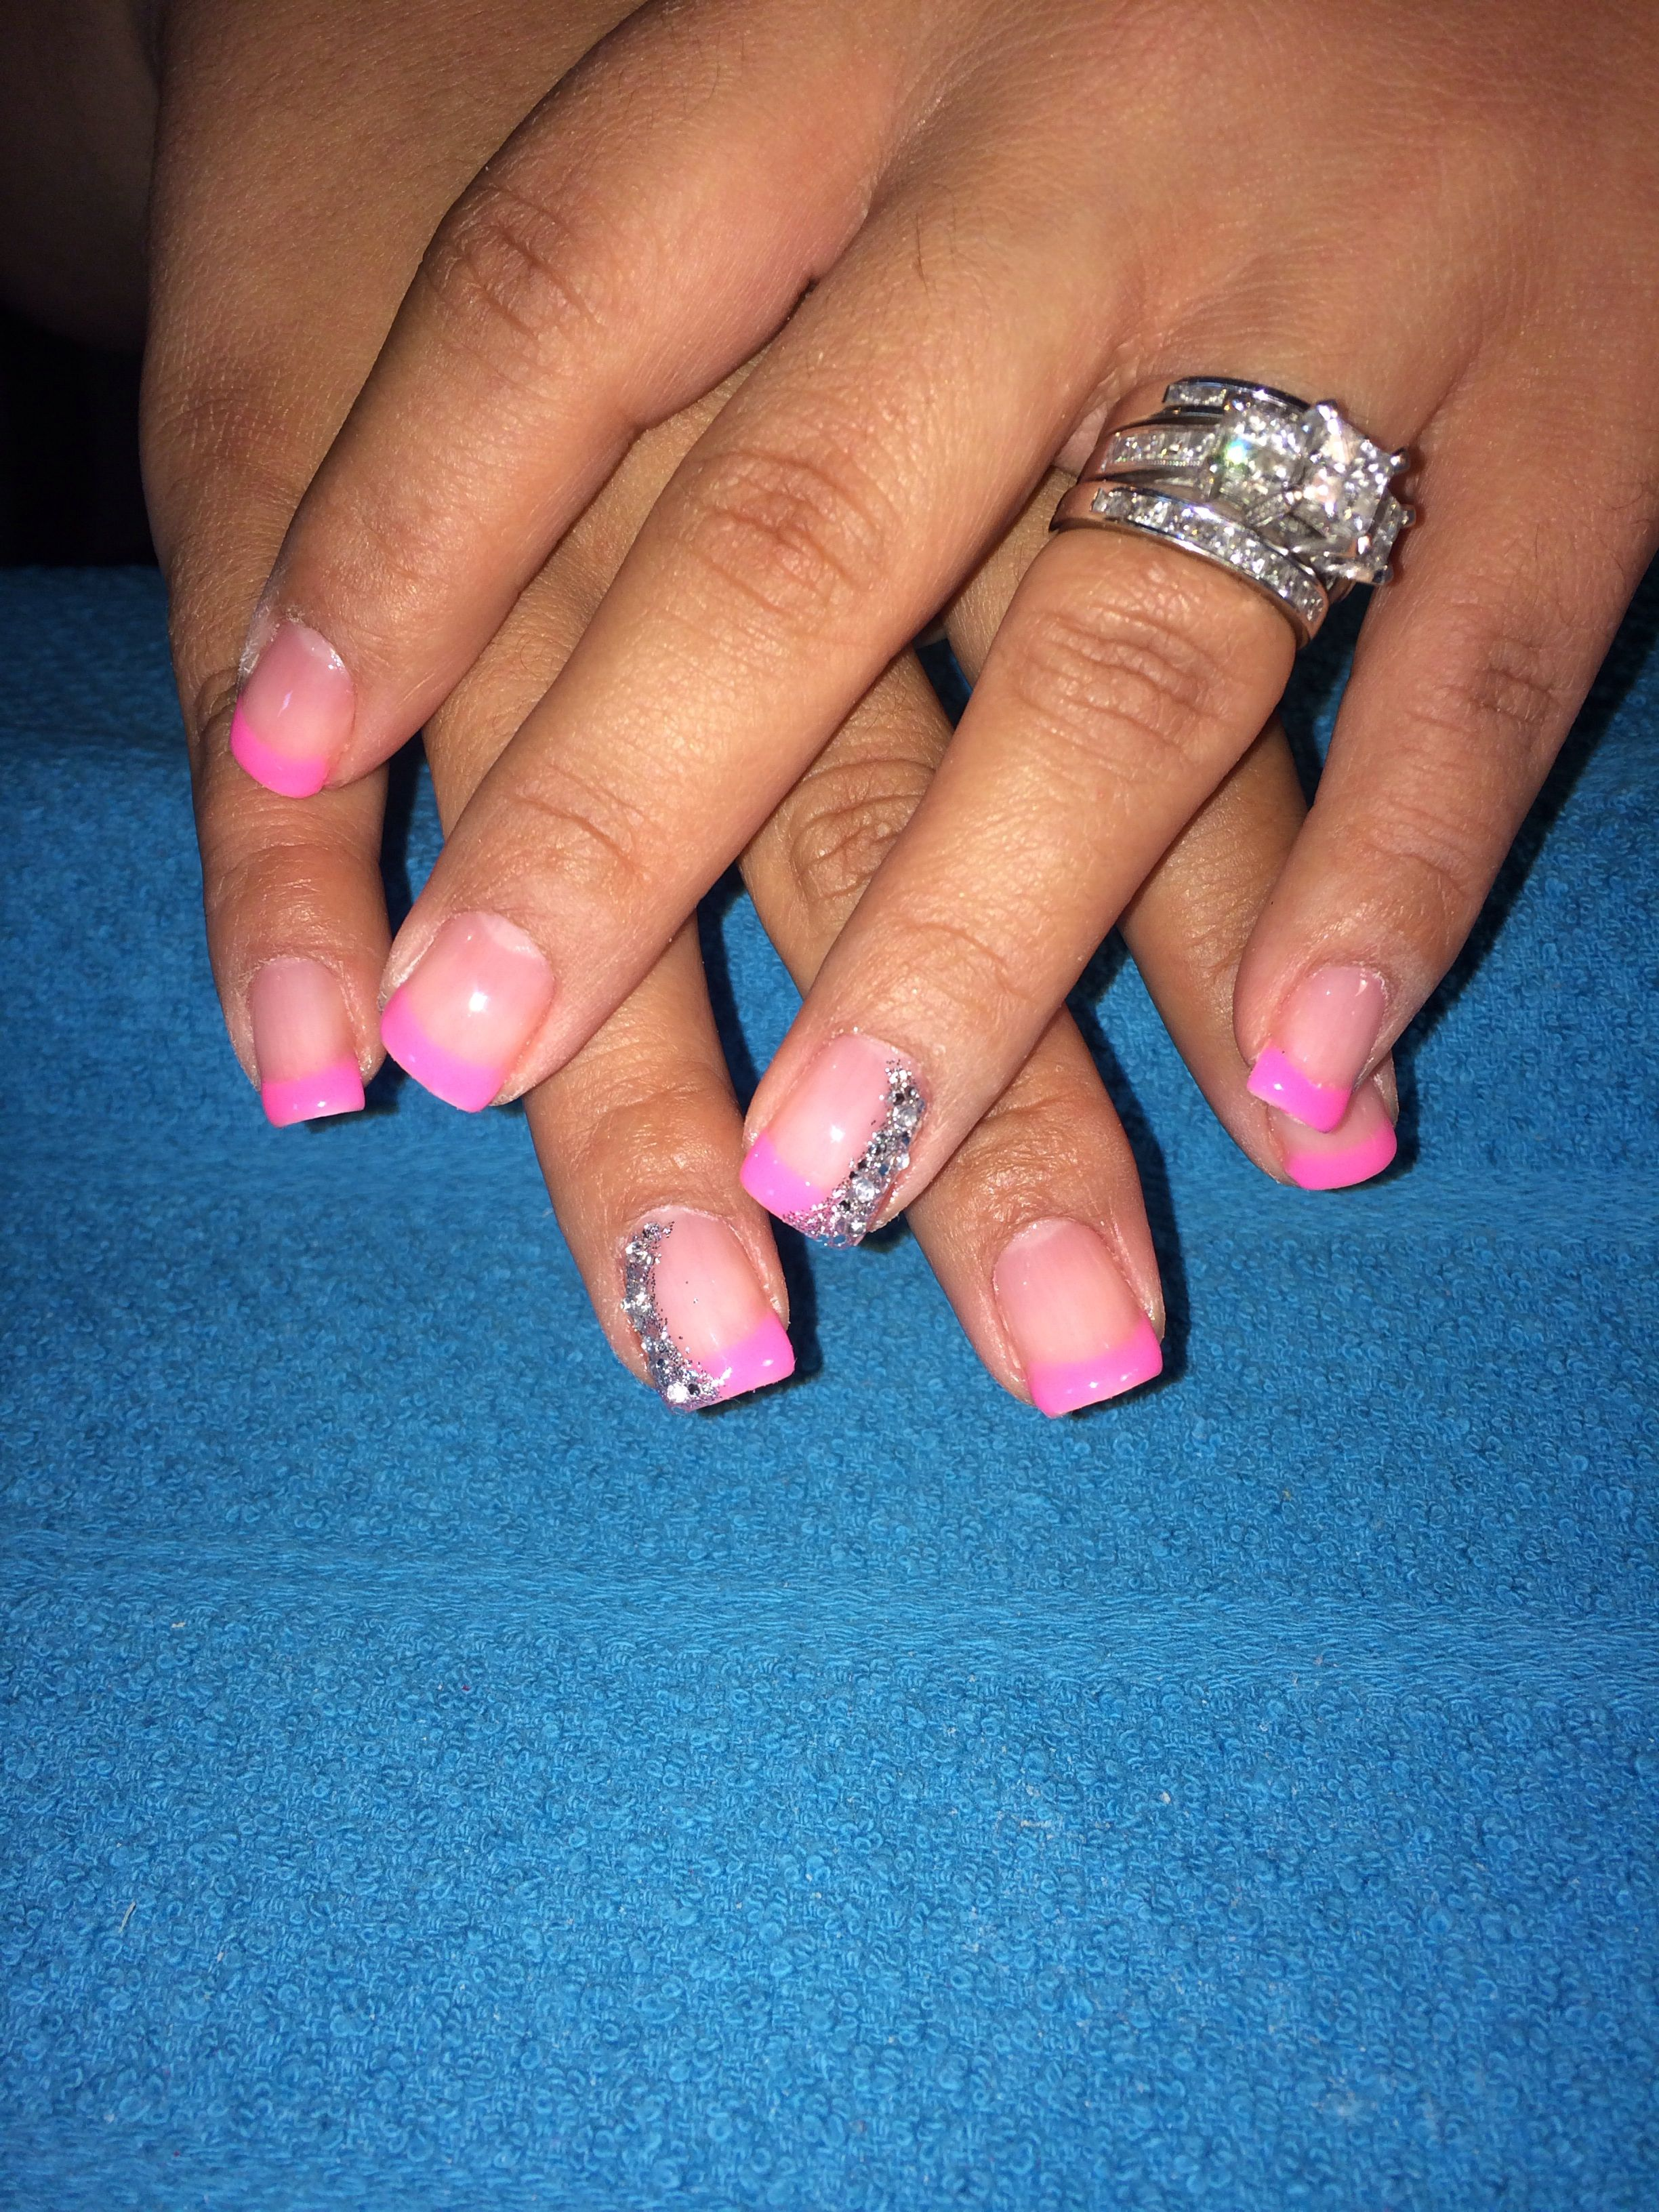 Pink French gel manicure with glitter design | nails Nails NAILS ...